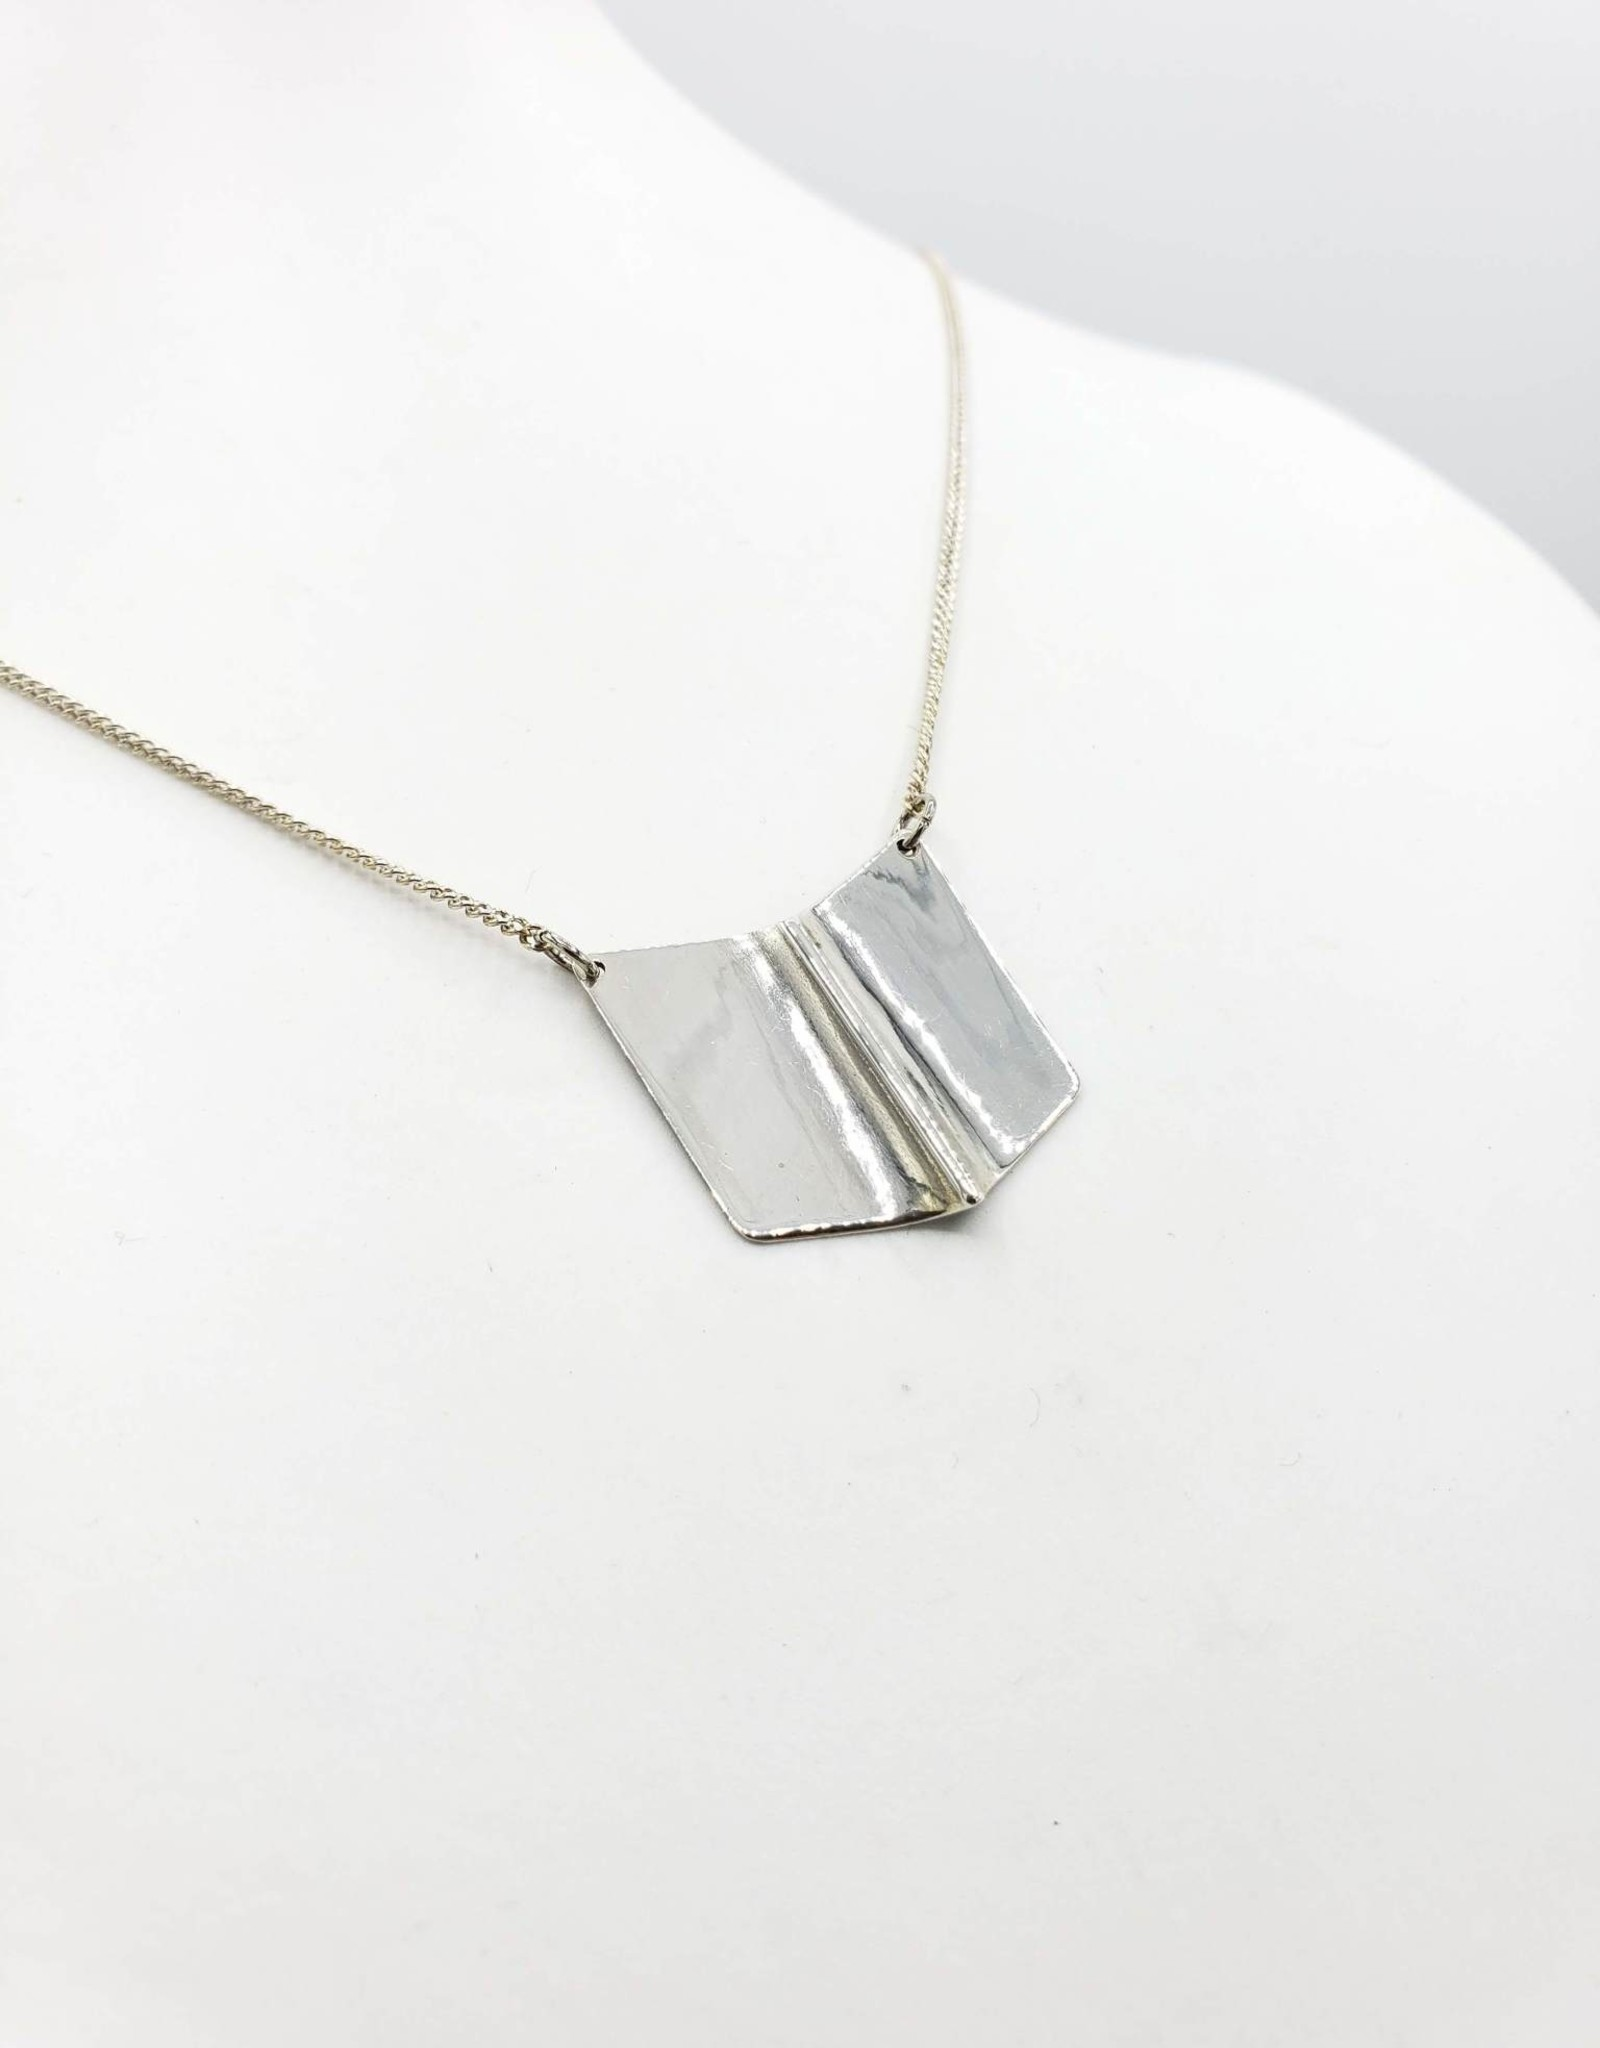 Chevron sterling necklace